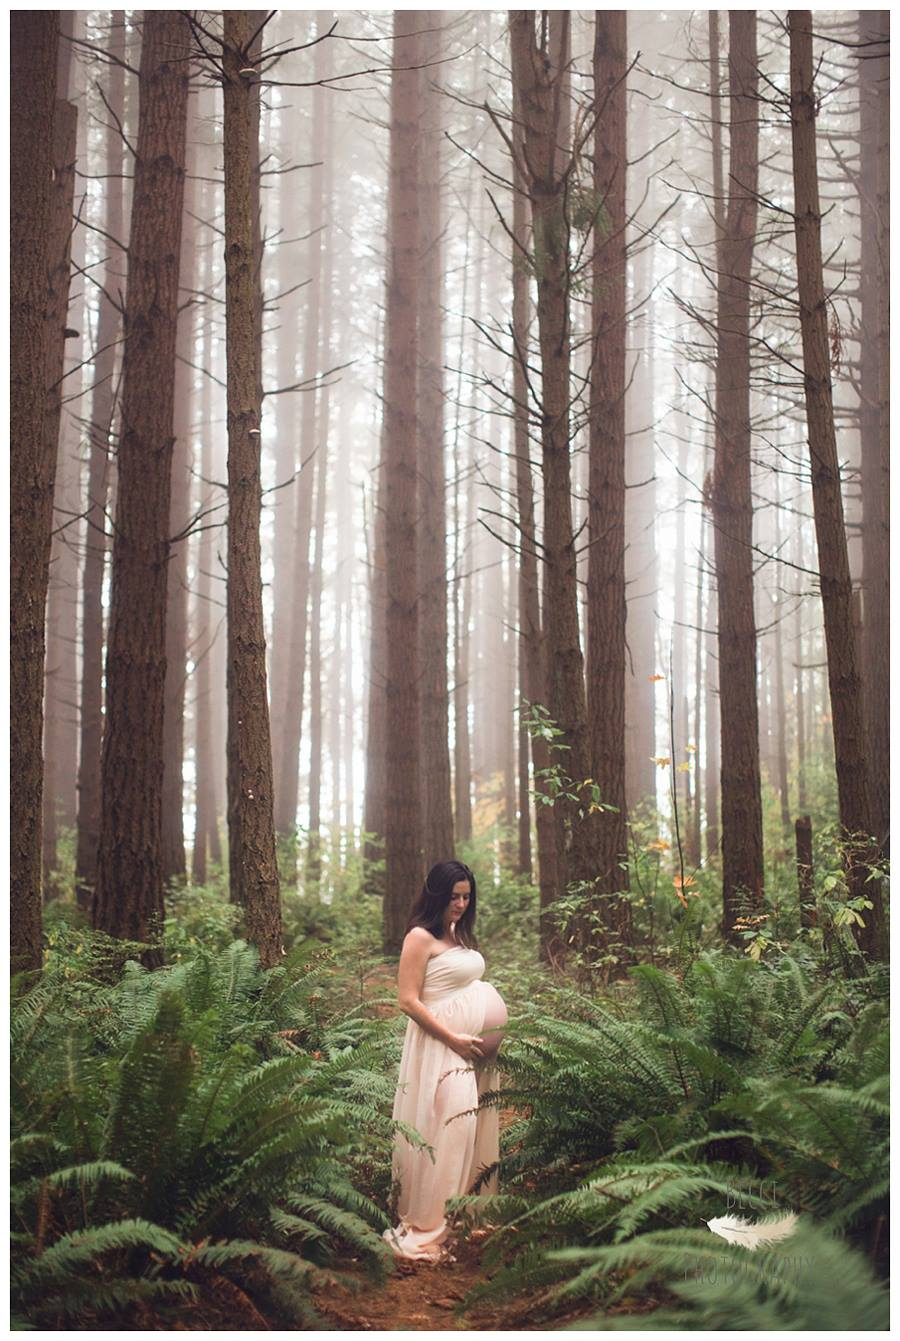 BEST_Maternity_photography_Atlanta_Bellingham.jpg